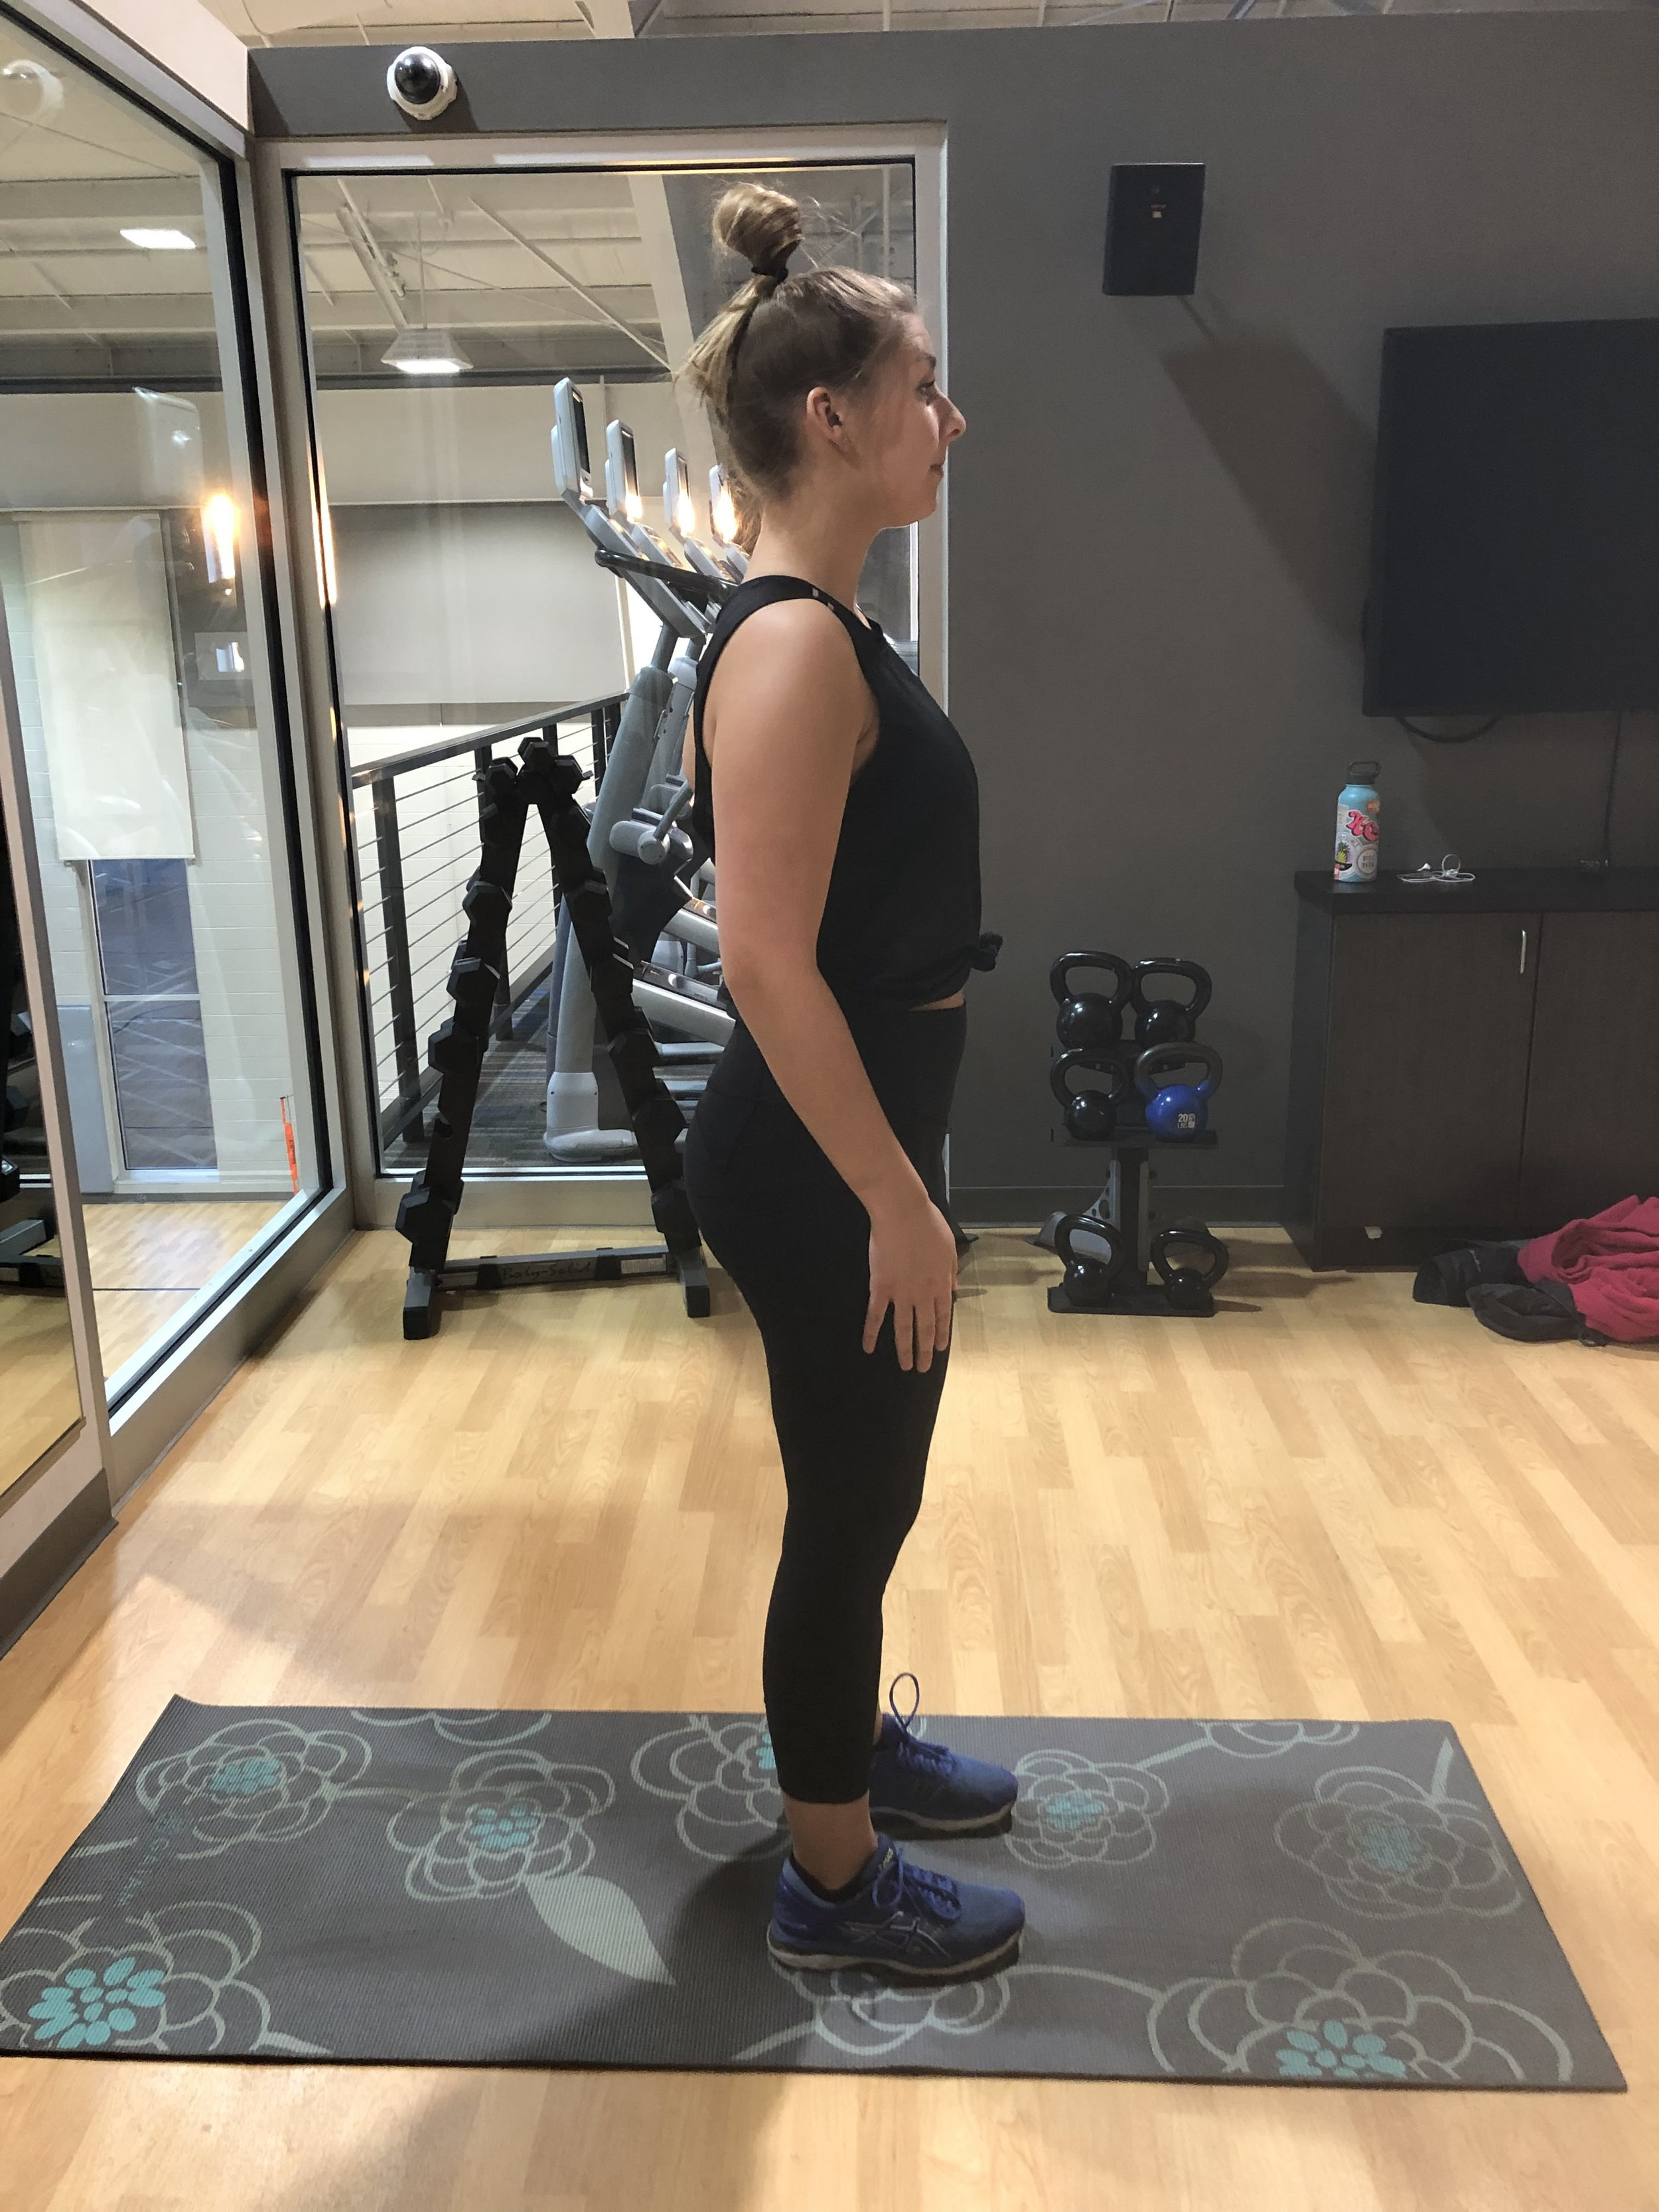 ALTERNATING LUNGES: Starting position